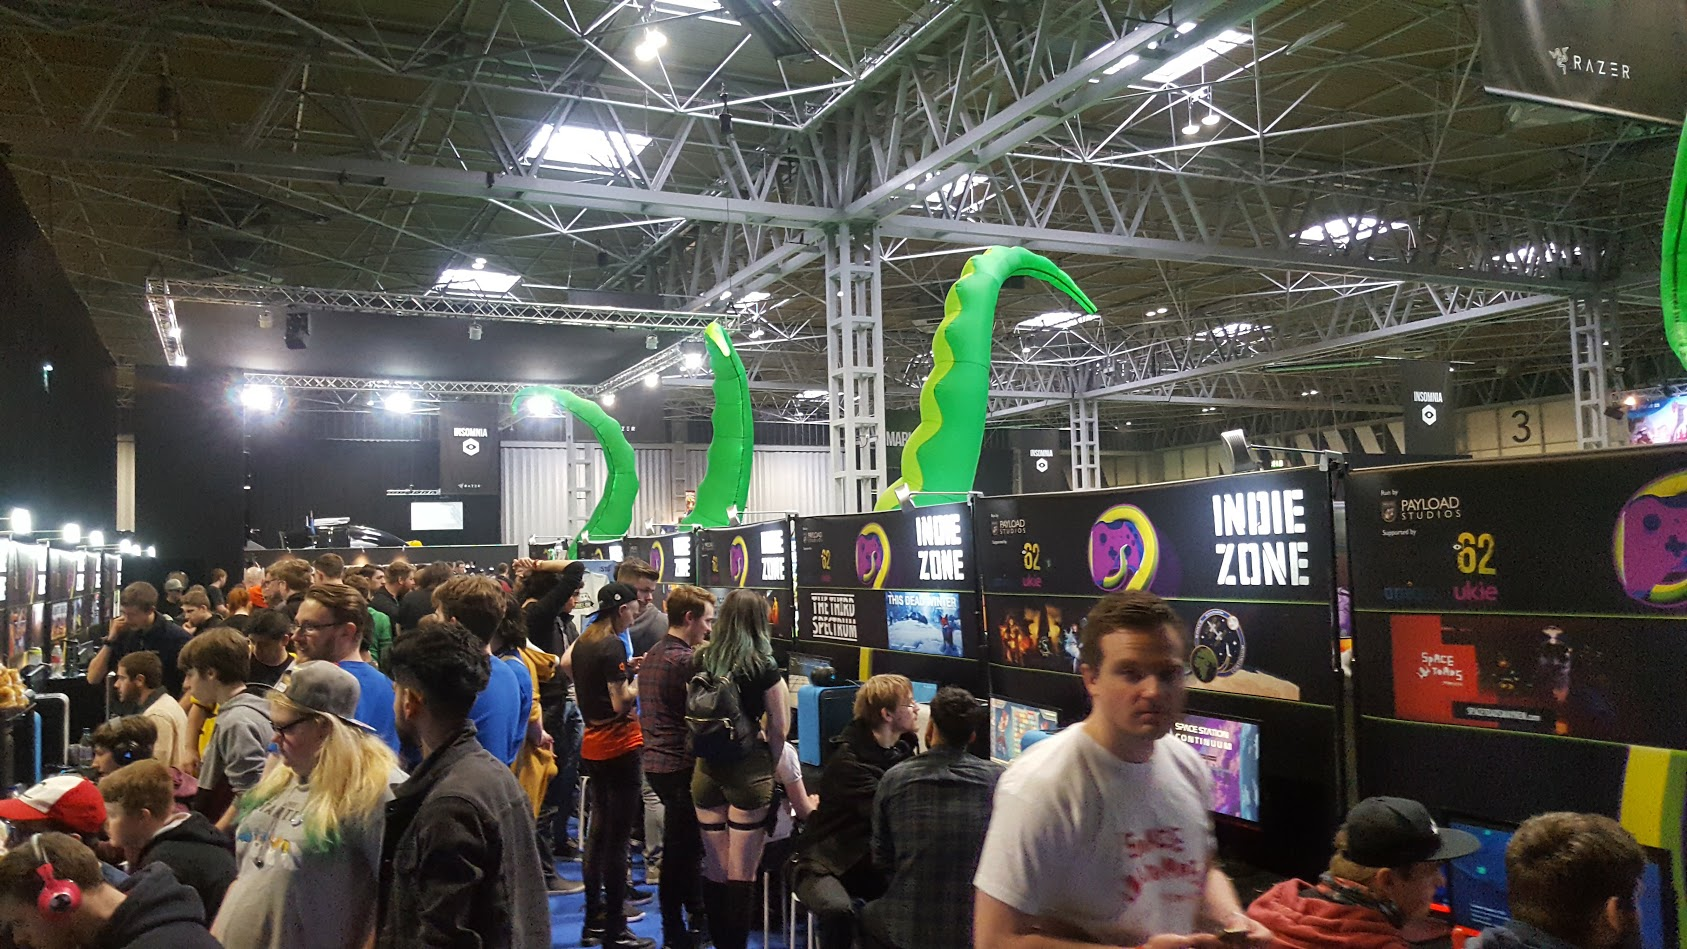 The Indie Zone got VERY busy